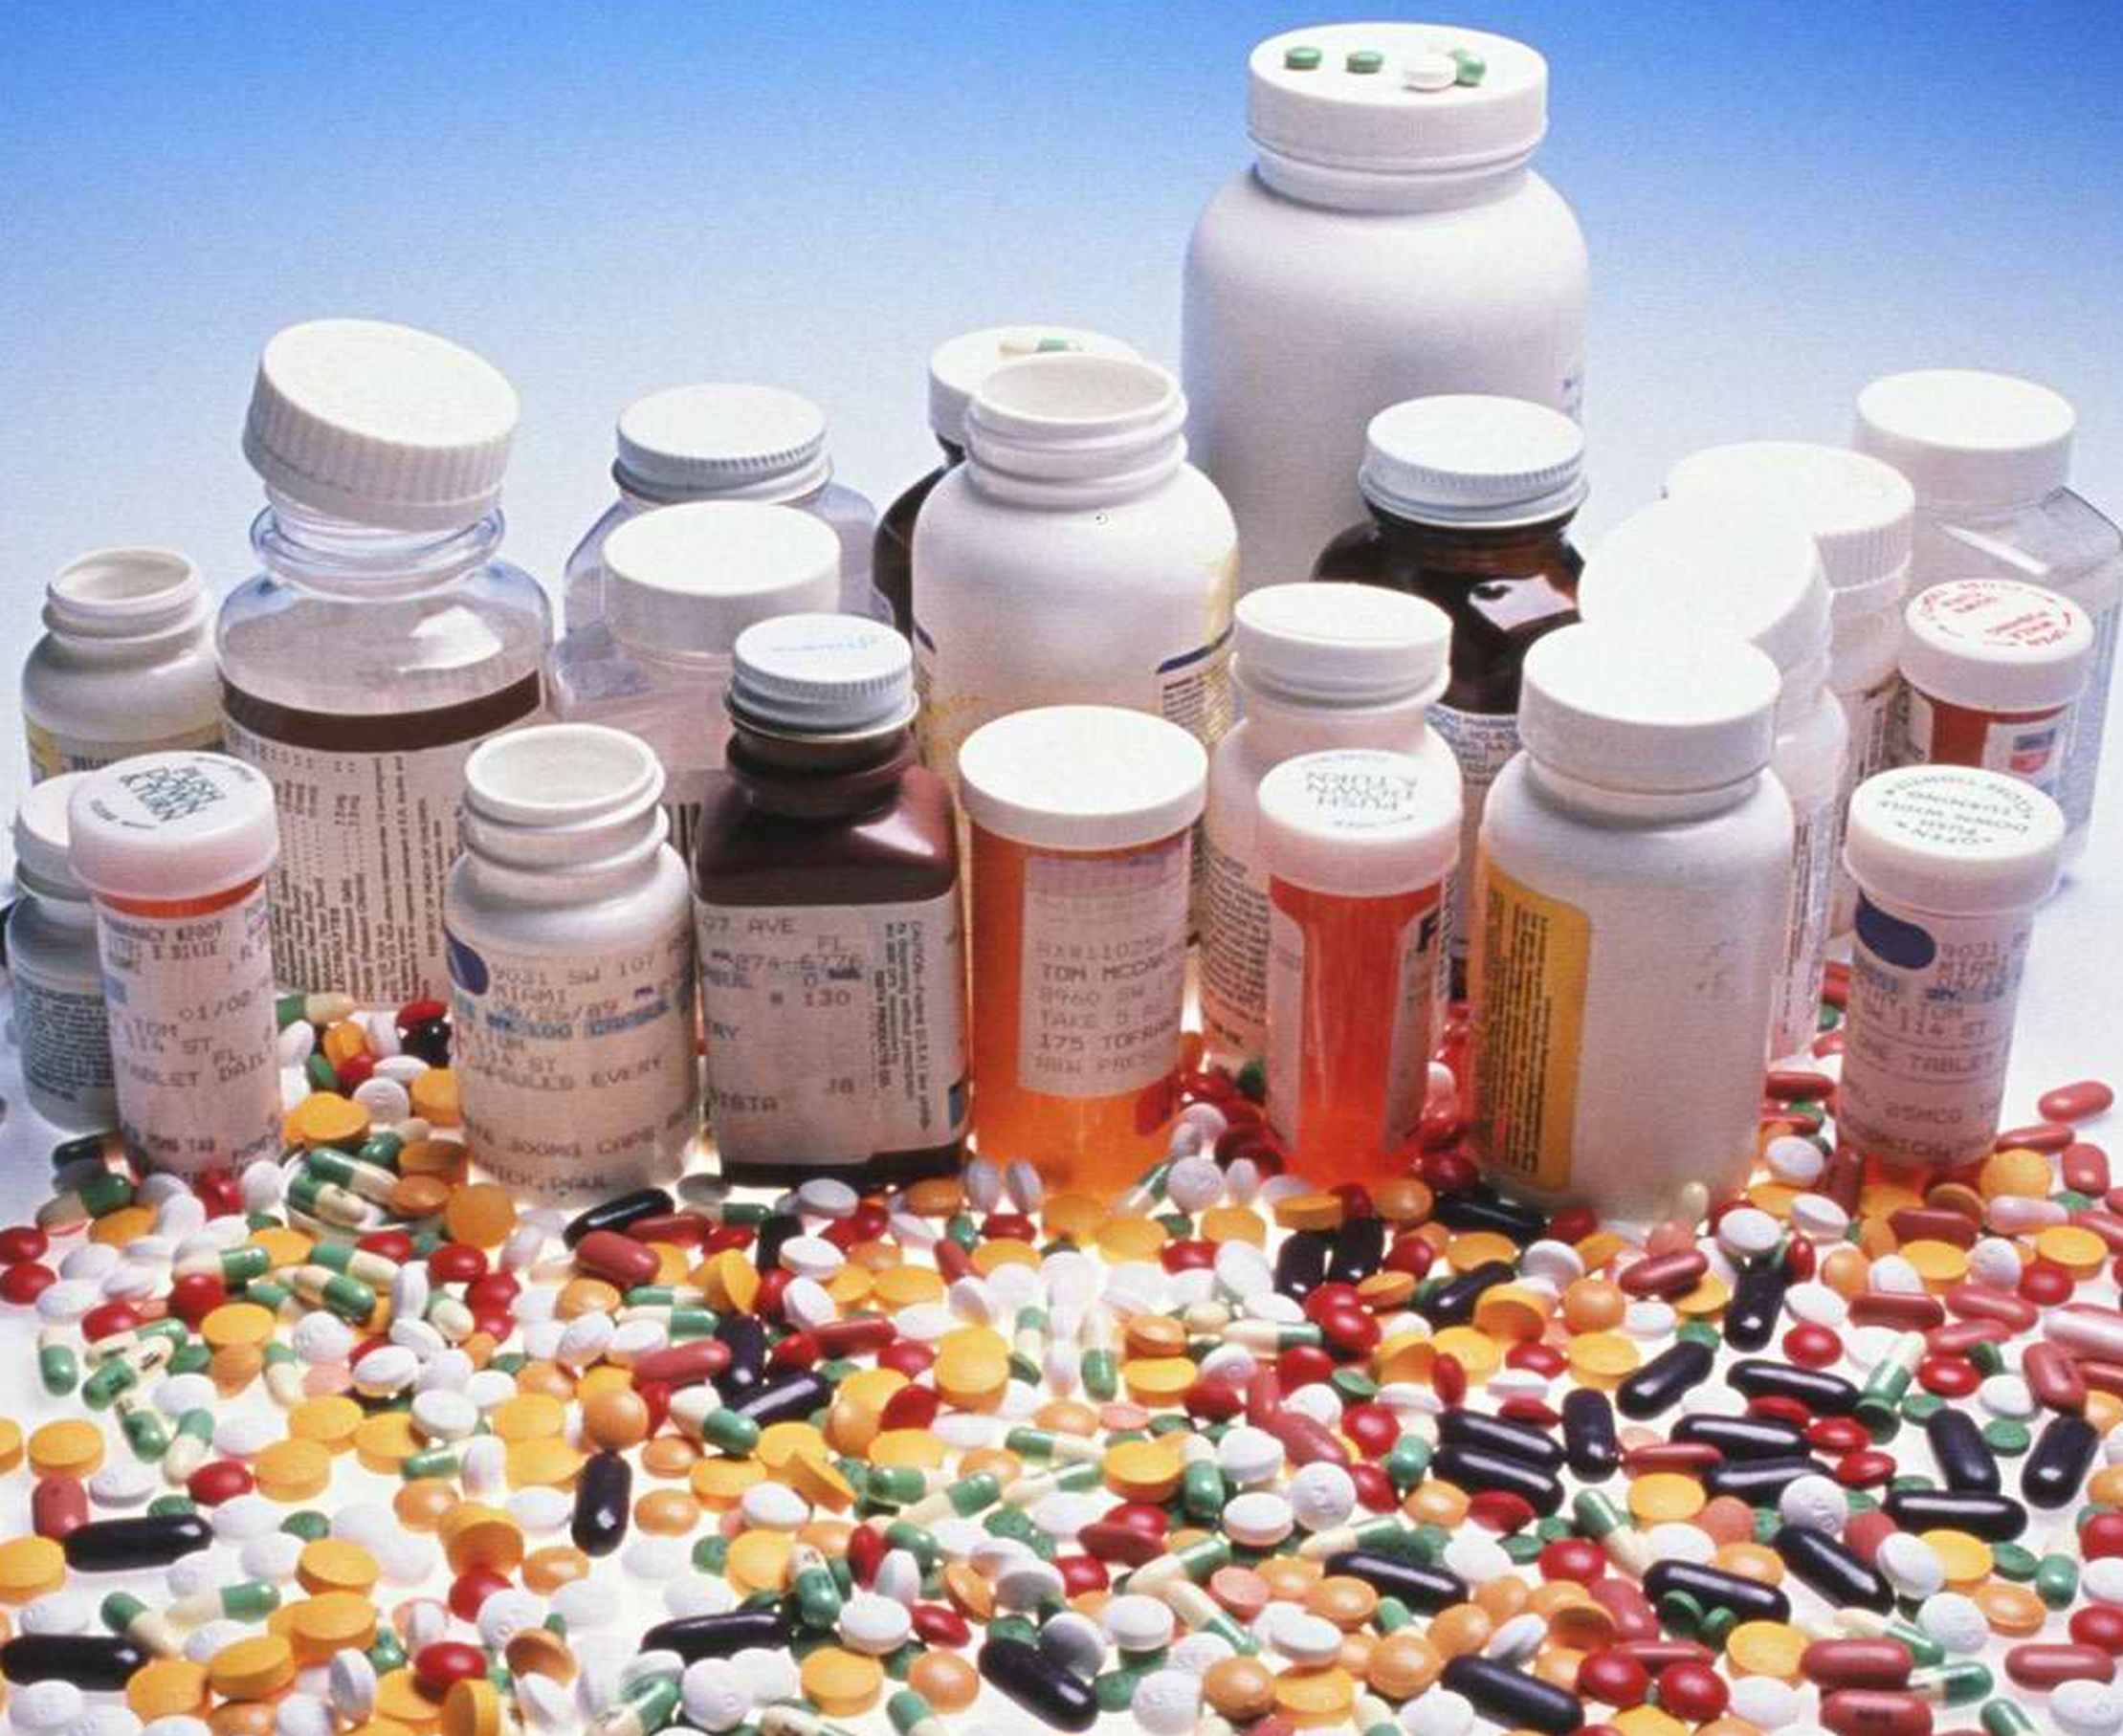 Other prescription drugs linked to suicide – AntiDepAware